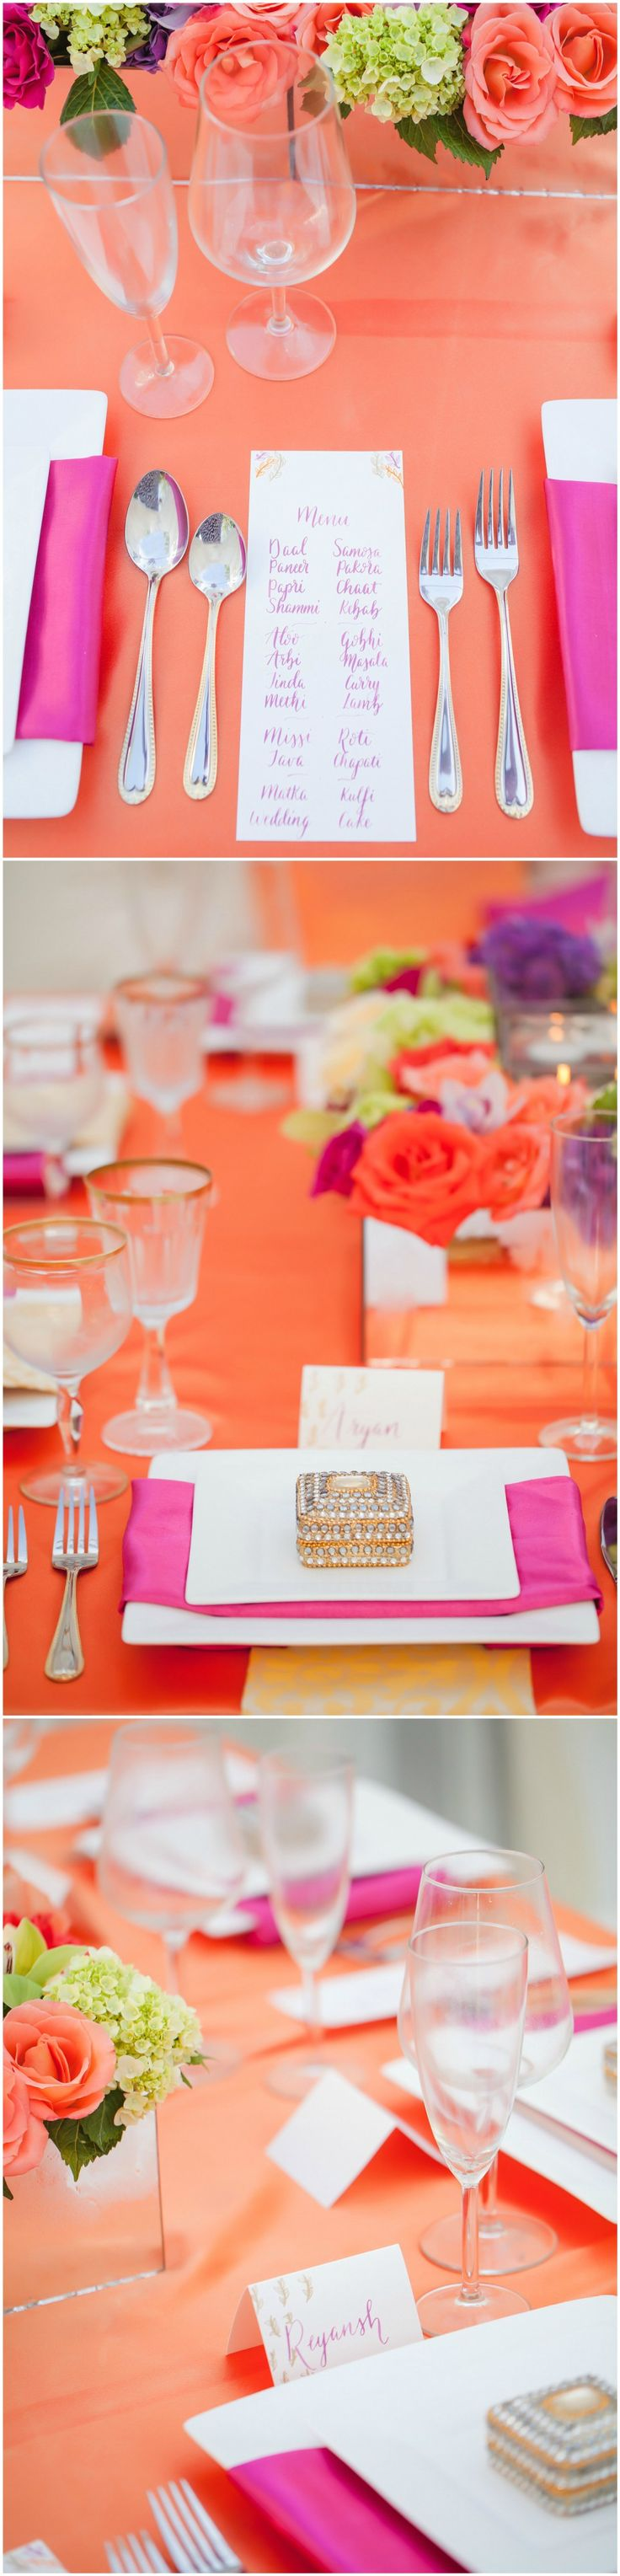 Vibrant wedding reception placesetting, orange tablecloths, bright pink napkins, orange roses, pink and white handwritten place cards and menus // Casey Hendrickson Photography